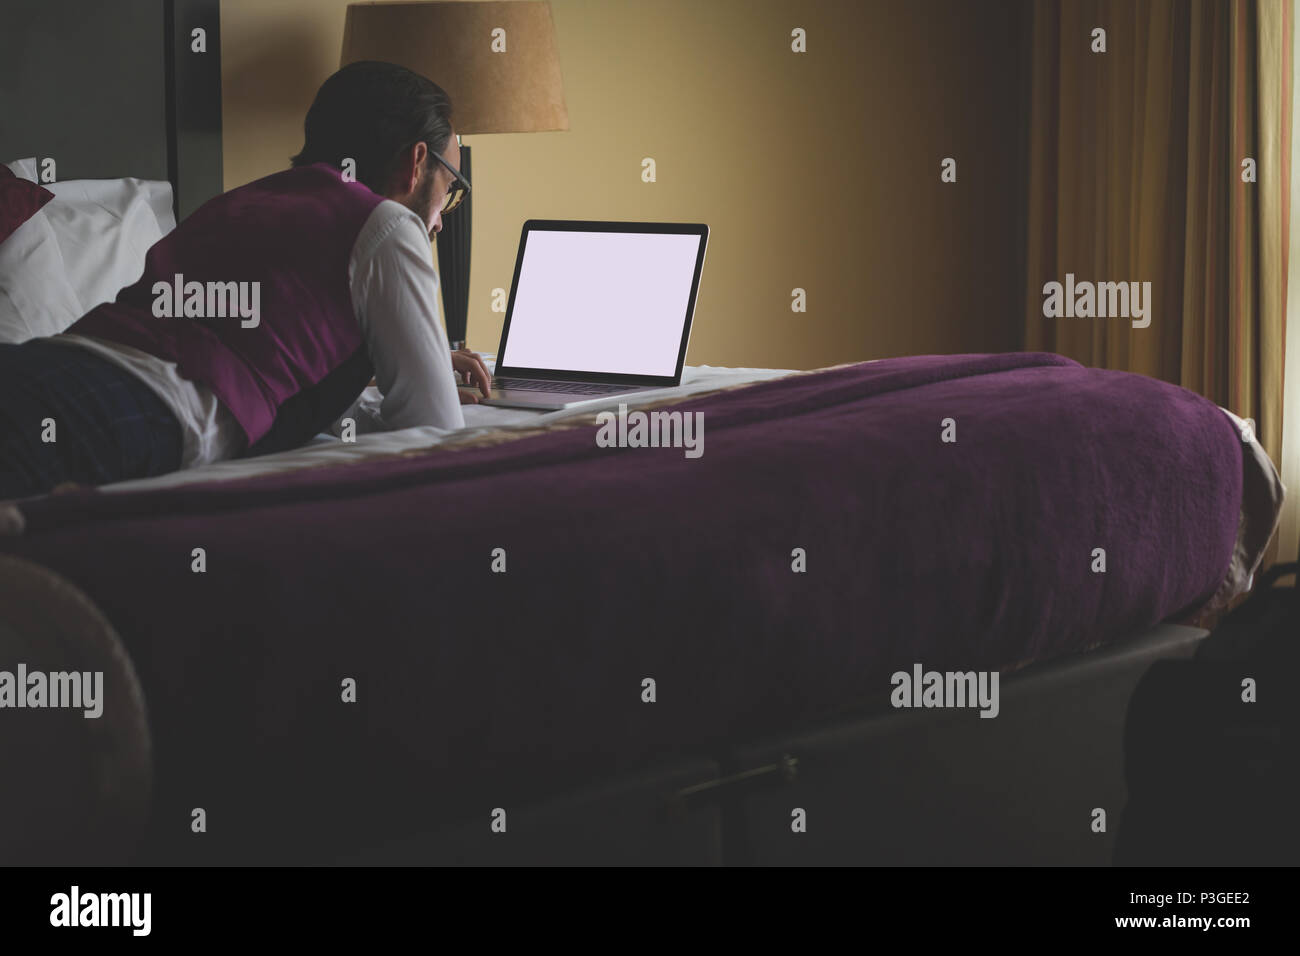 Businessman using laptop on bed - Stock Image